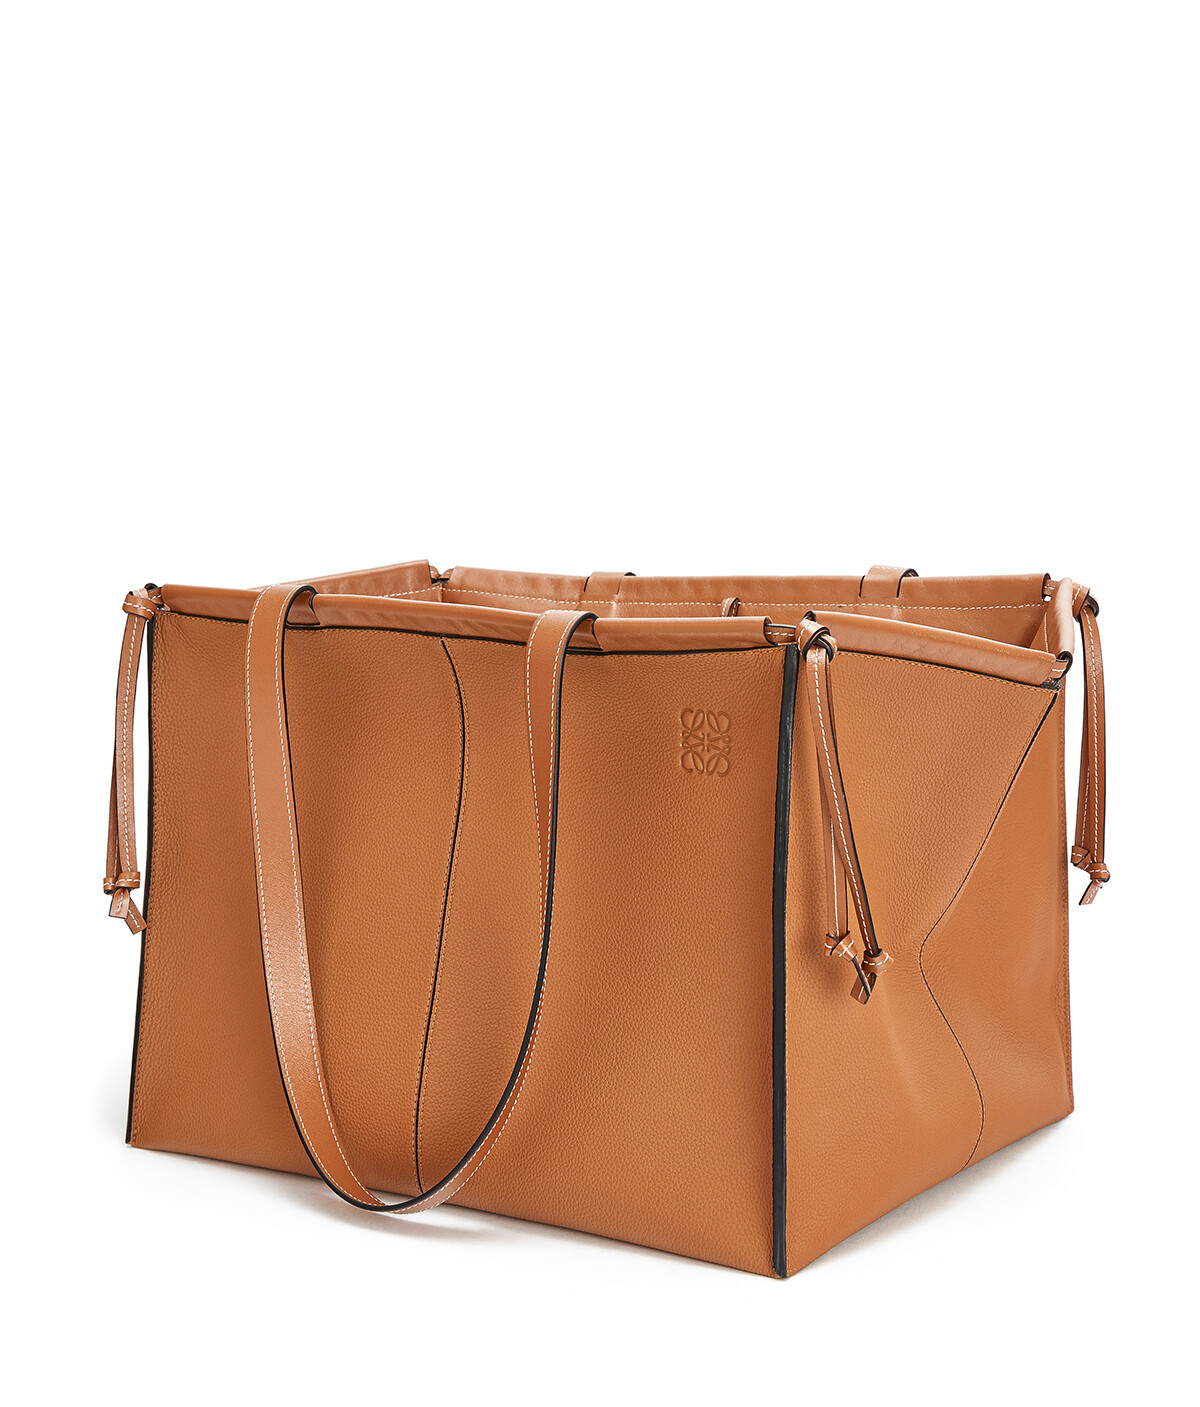 LOEWE 大号Cushion Tote手袋 Light Caramel front